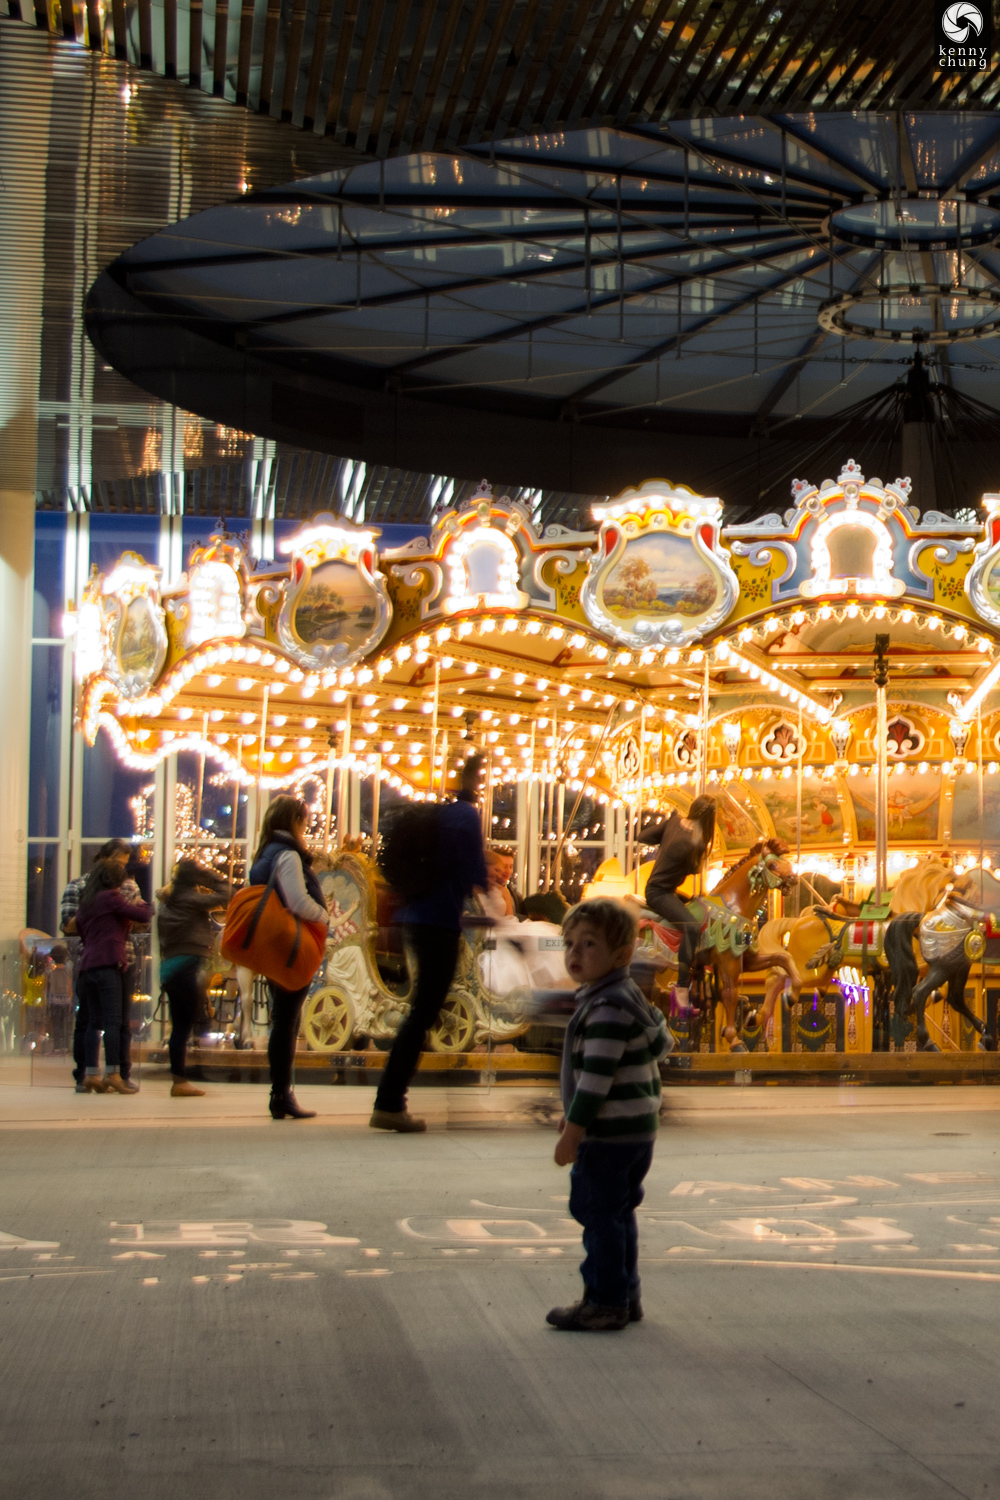 Boy at Janes Carousel in Brooklyn